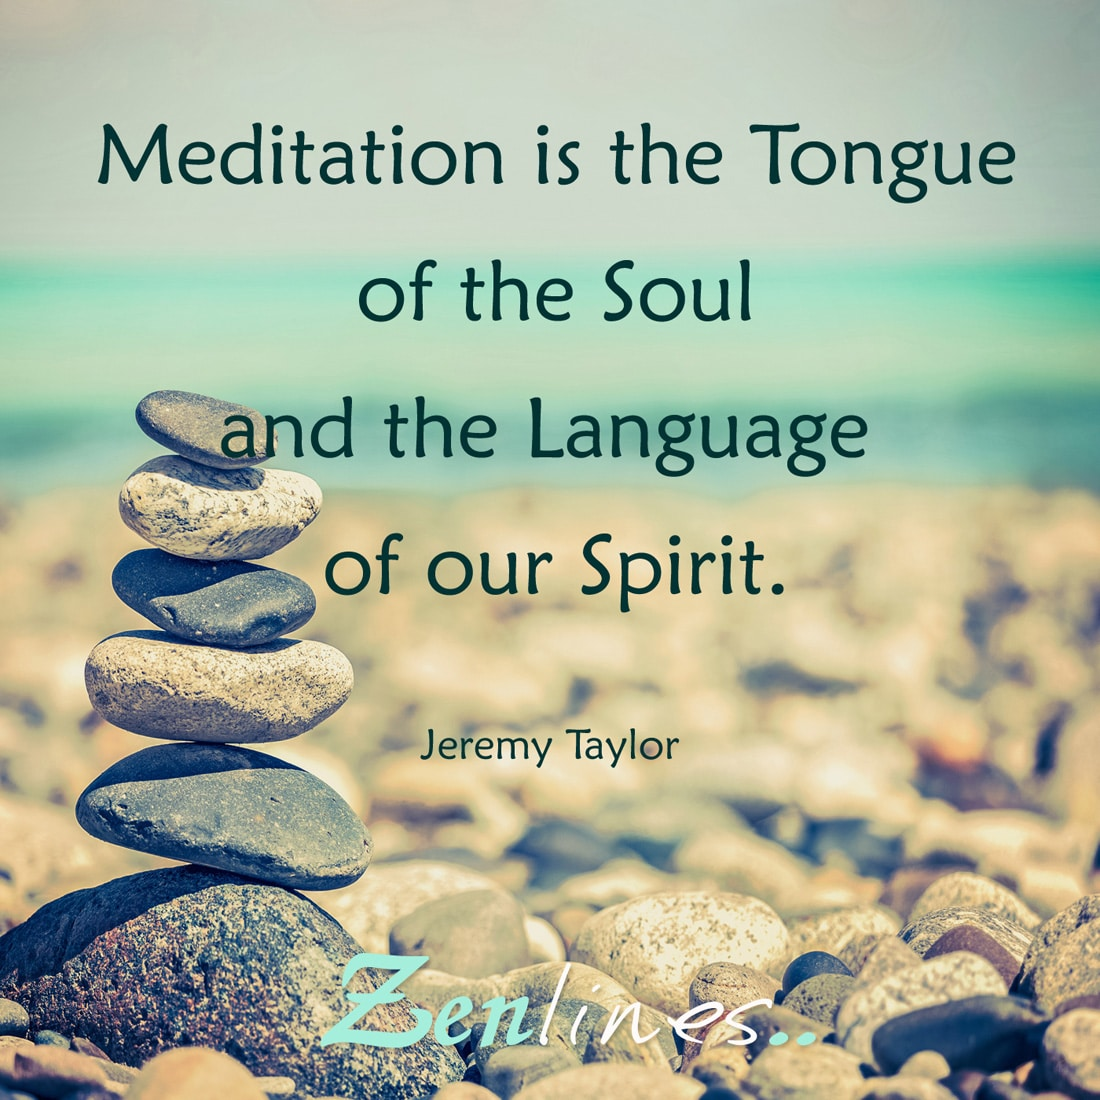 Meditation is the tongue of the soul and the language of our spirit.